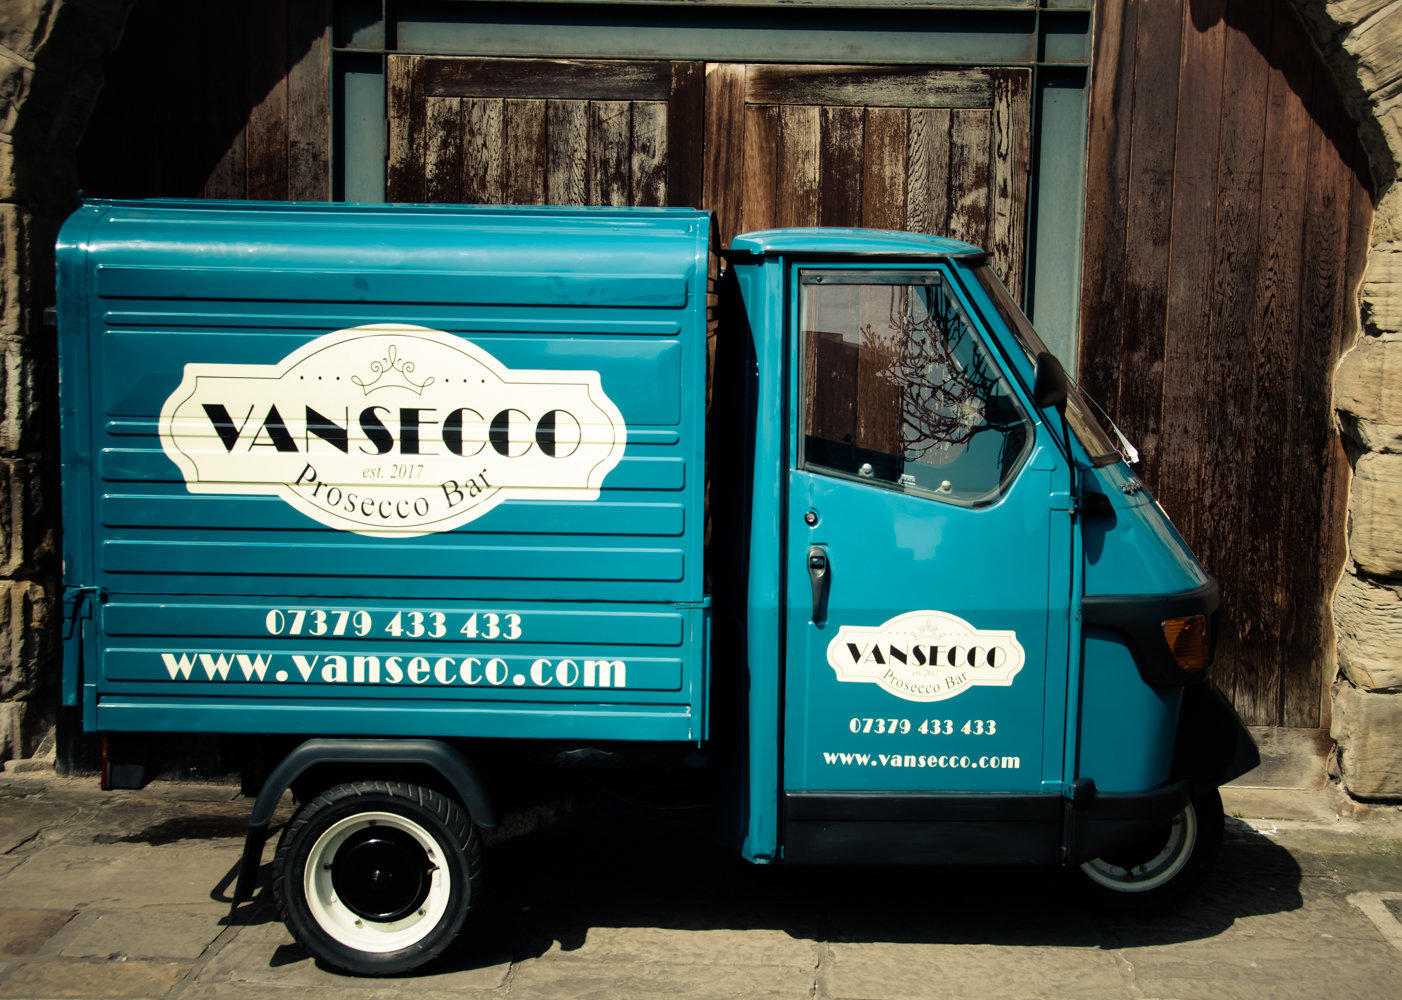 1996 Piaggio Ape Mobile Prosecco Van... REDUCED PRICE For Sale (picture 4 of 4)